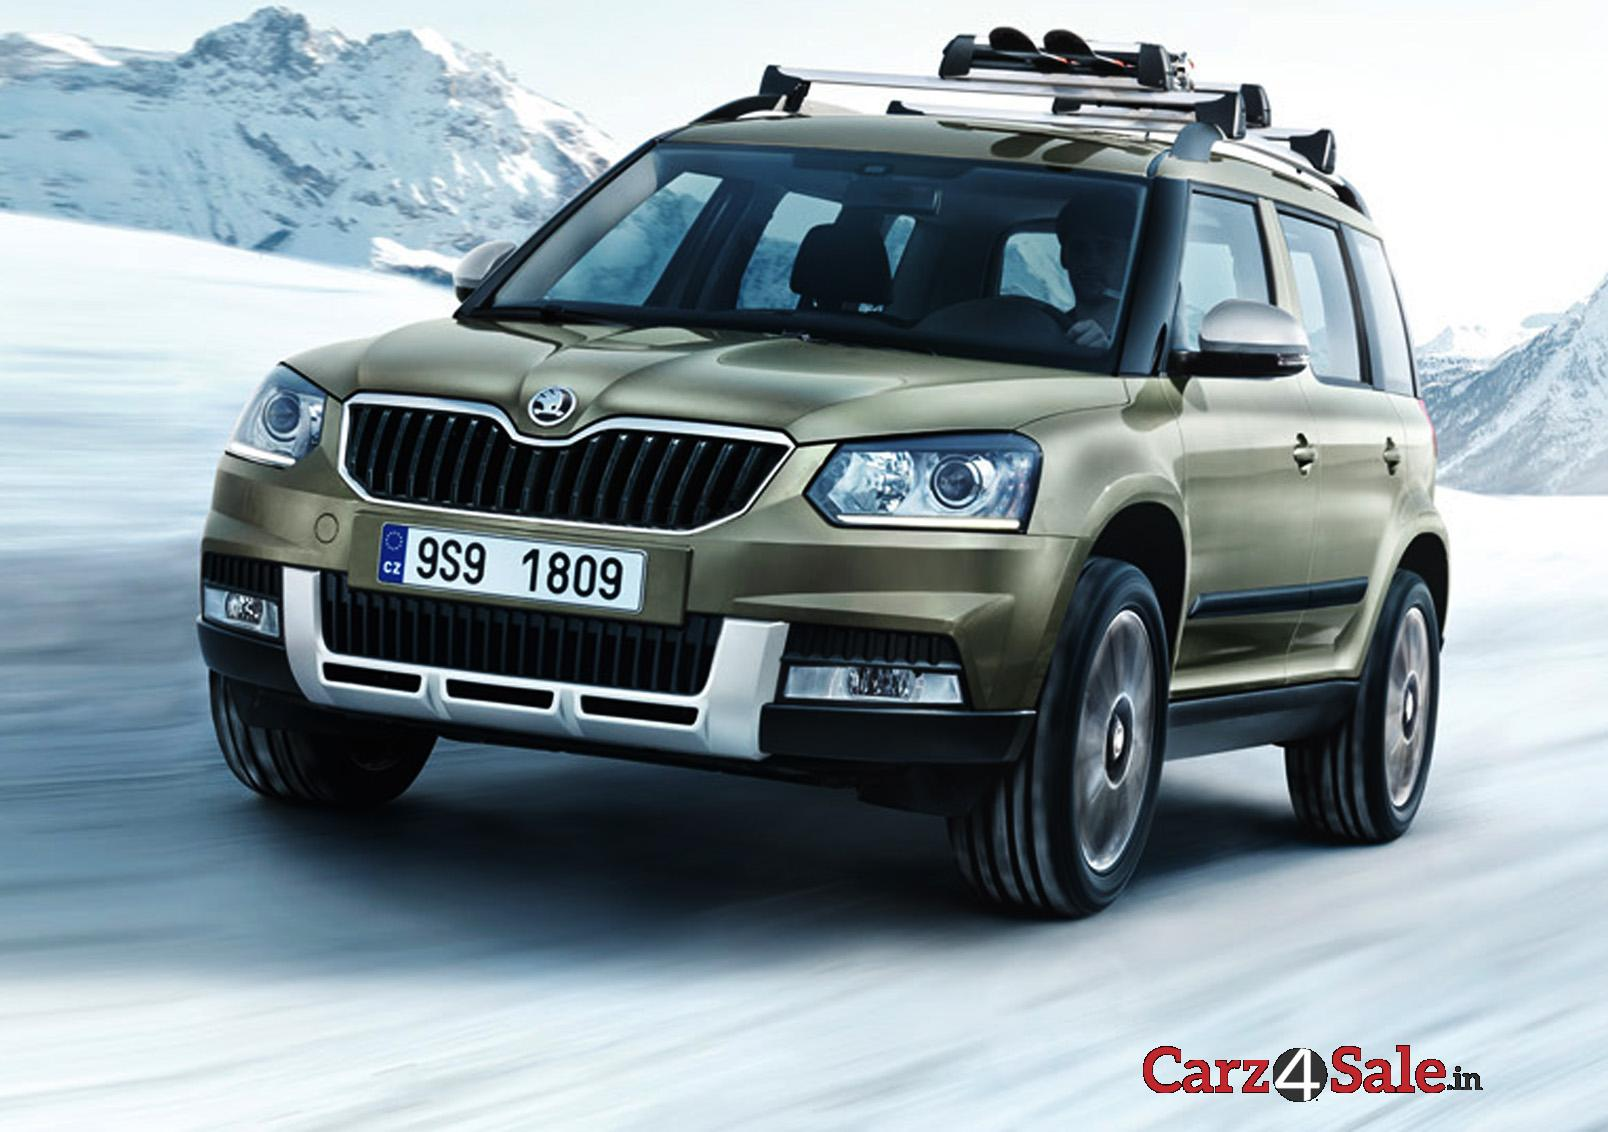 2015 skoda yeti first look review carz4sale. Black Bedroom Furniture Sets. Home Design Ideas